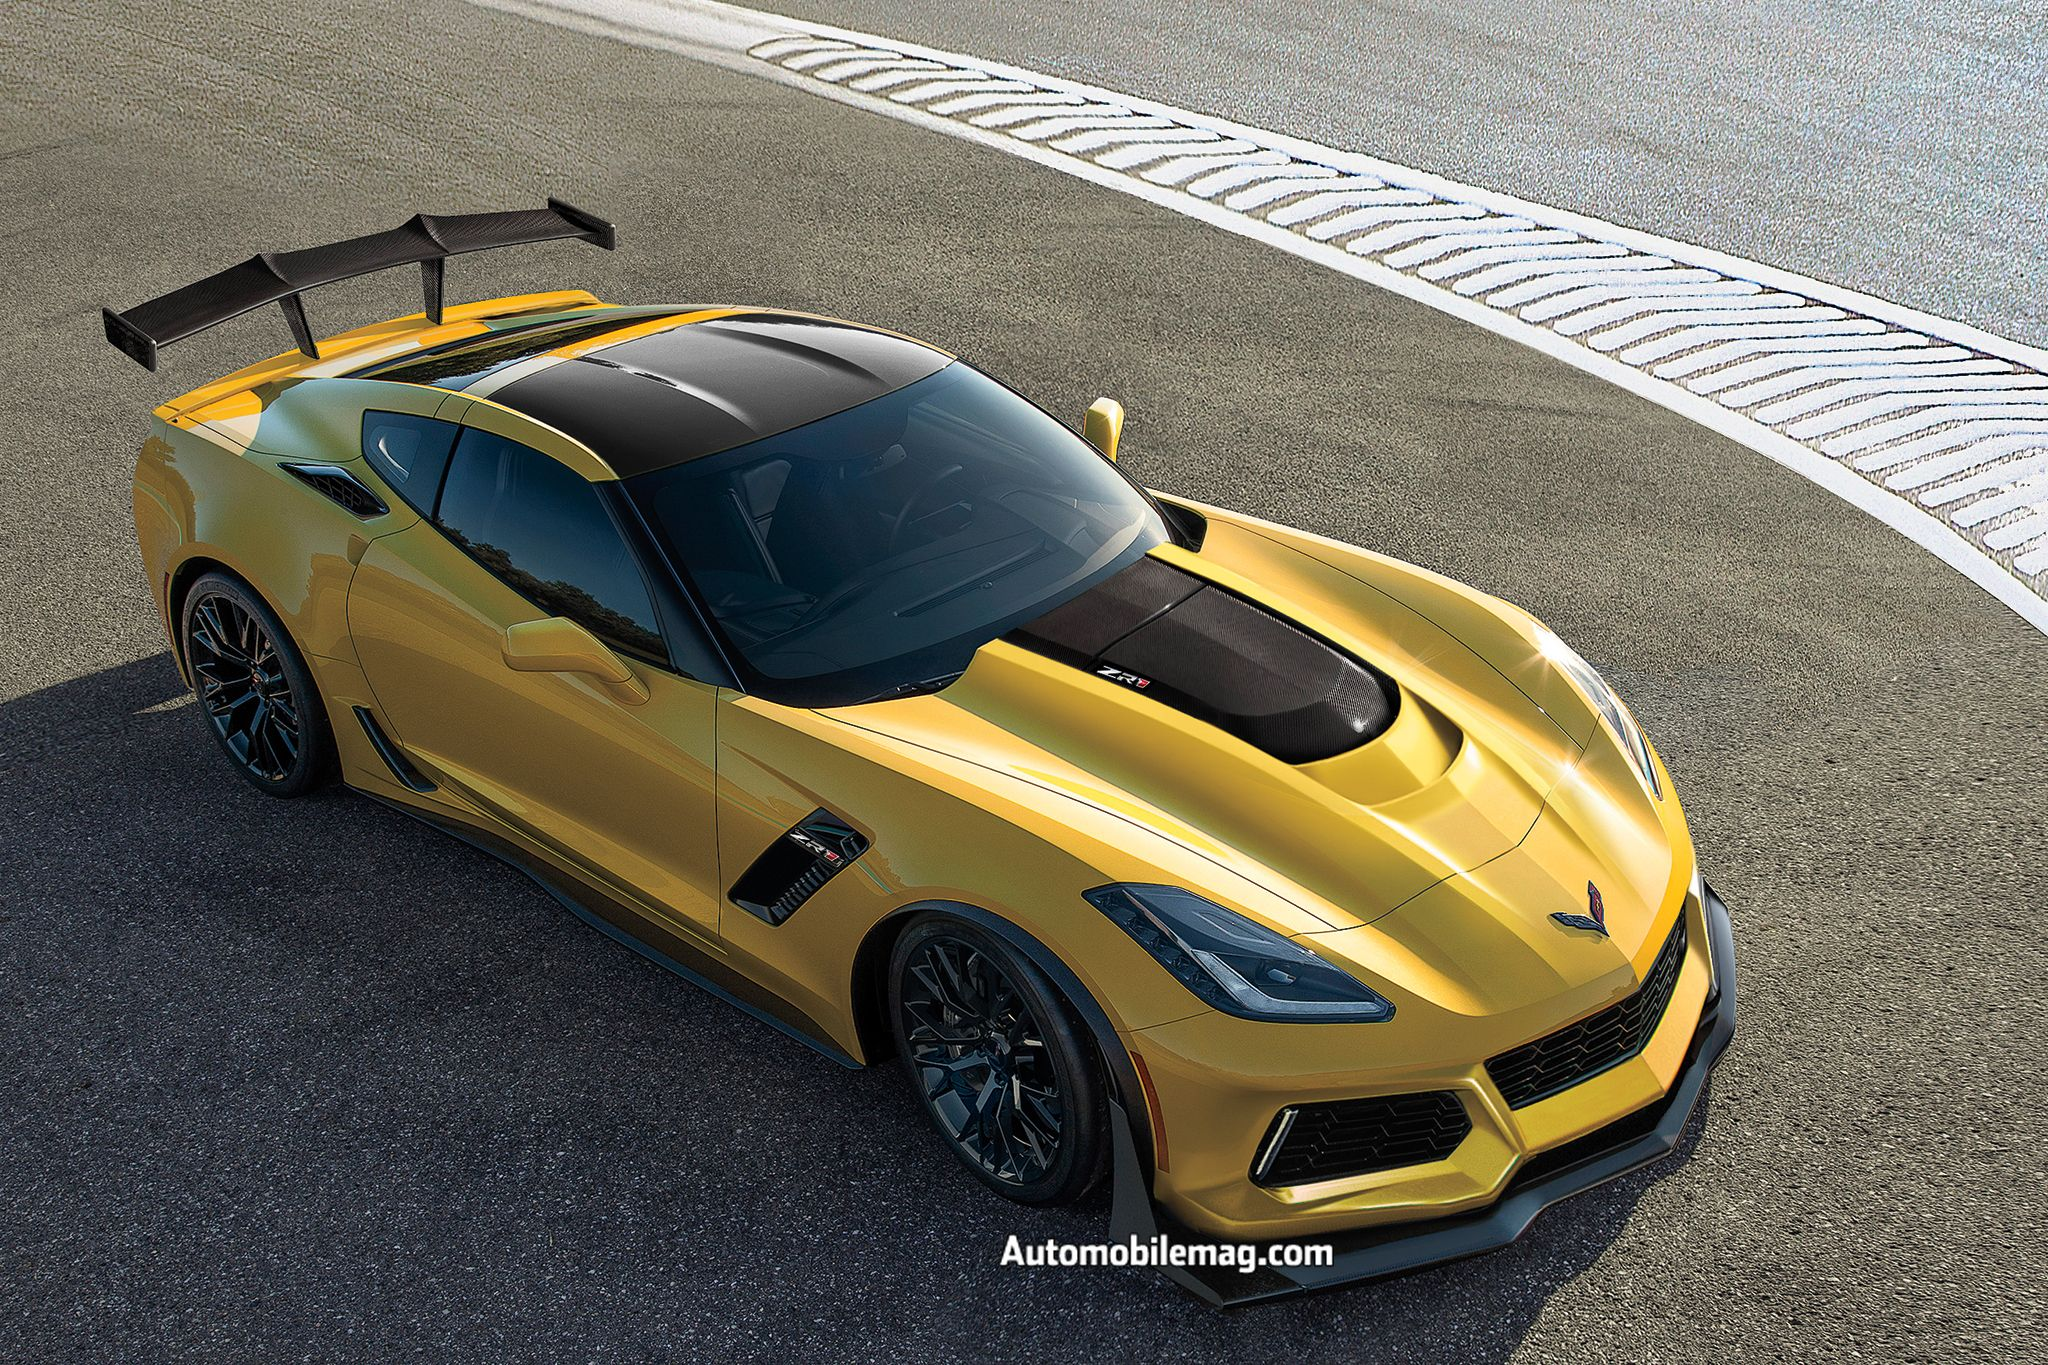 2019 Chevrolet Corvette Zr1 To Debut At 2017 Dubai Motor Show